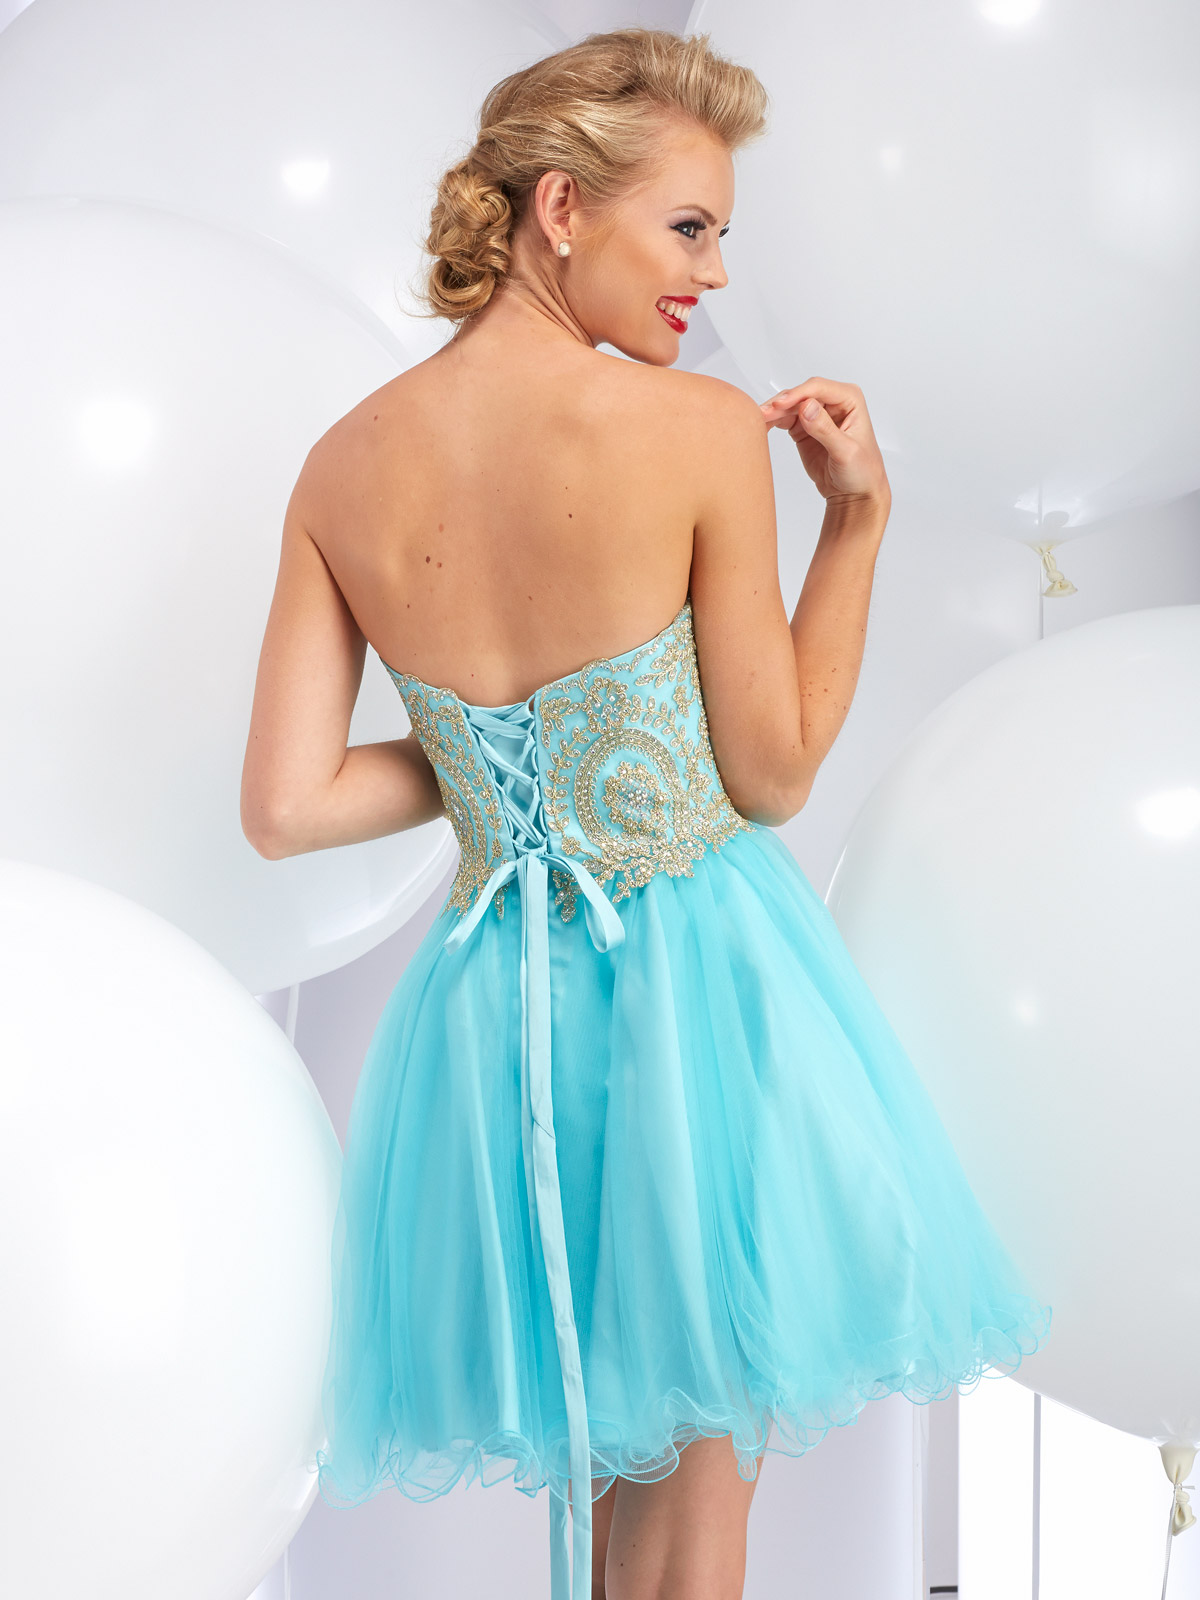 Clarisse 2840 Prom Dress | Promgirl.net